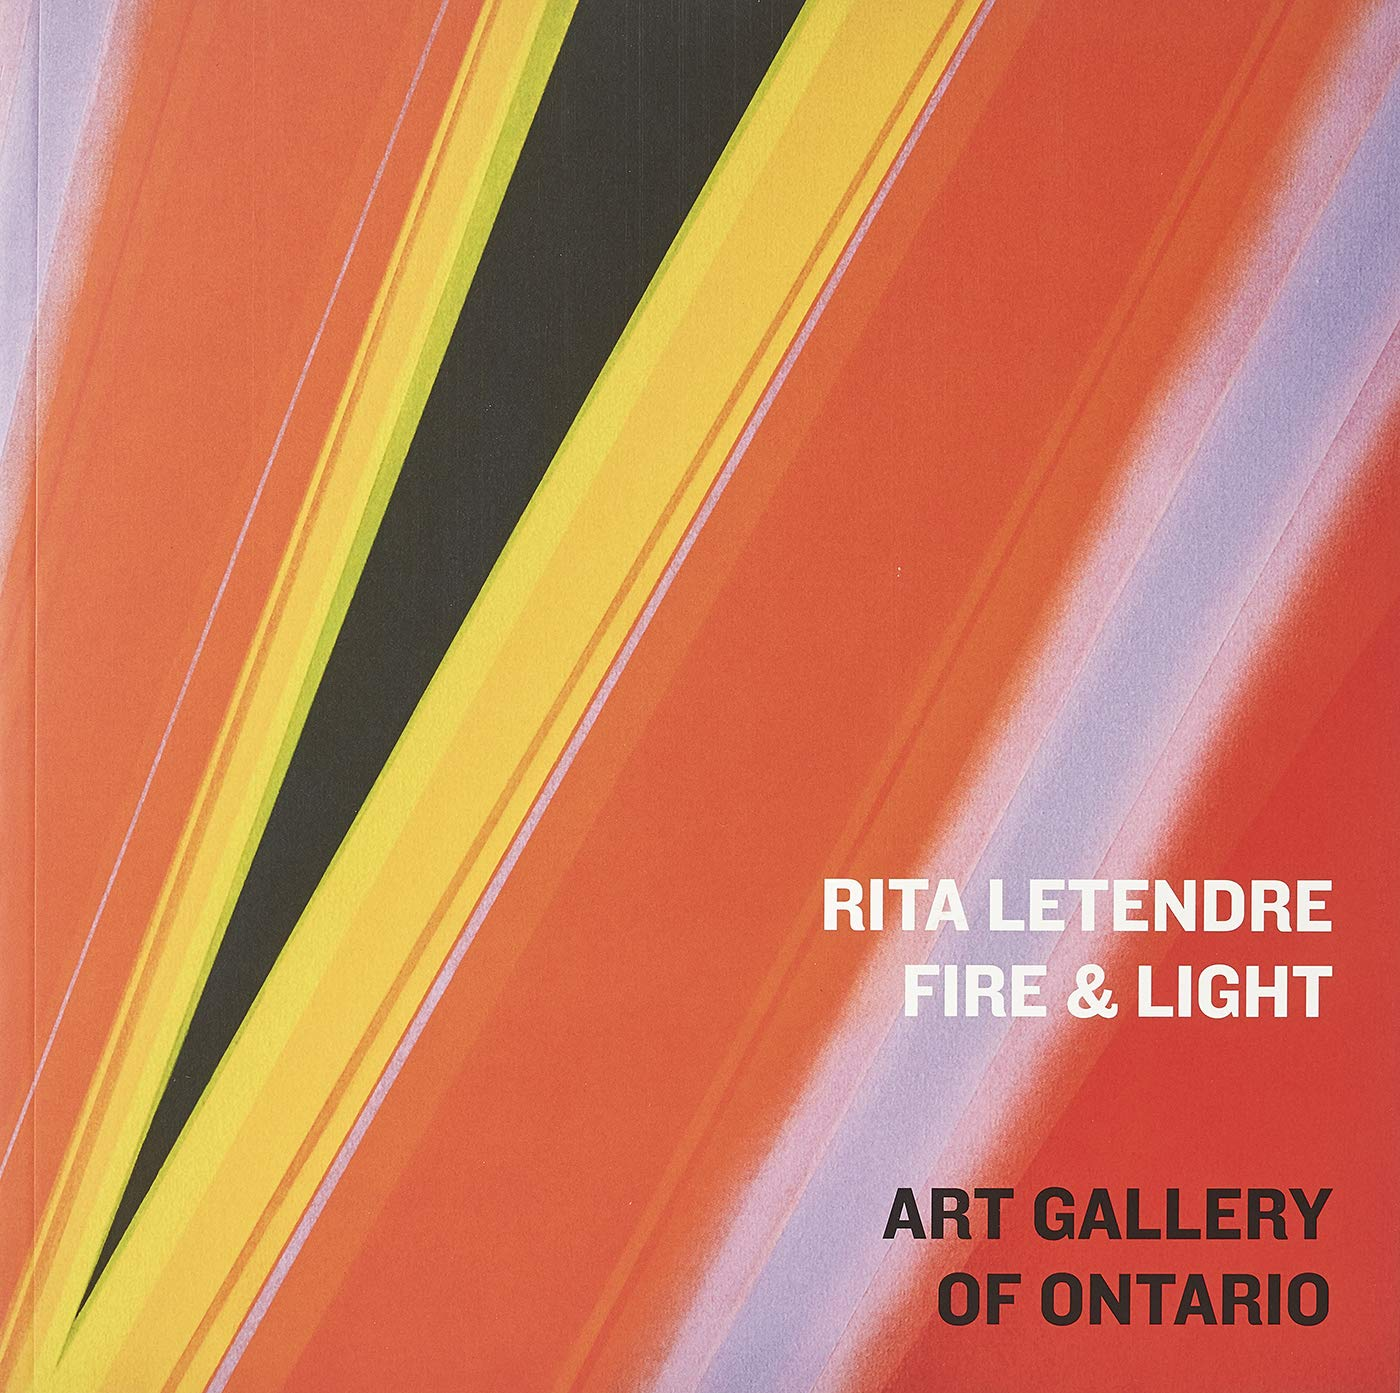 Rita Letendre Fire /& Light